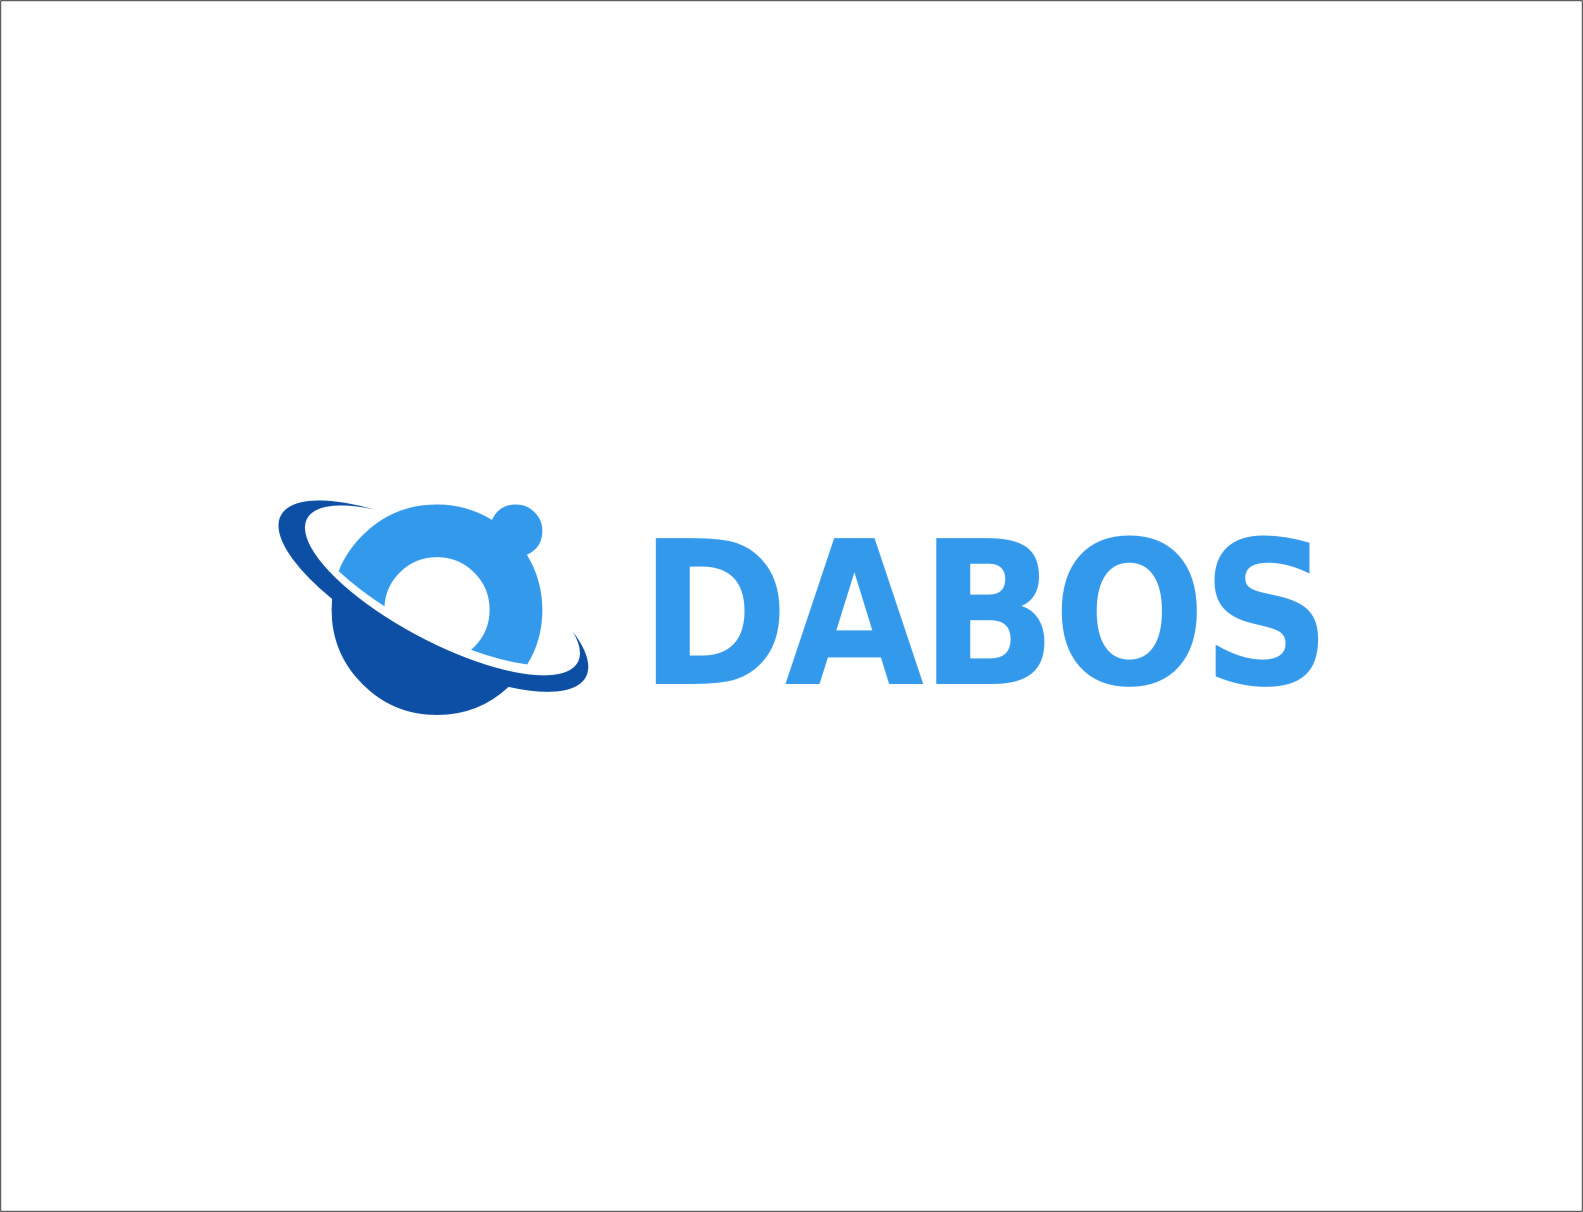 Logo Design by RasYa Muhammad Athaya - Entry No. 86 in the Logo Design Contest Imaginative Logo Design for DABOS, Limited Liability Company.